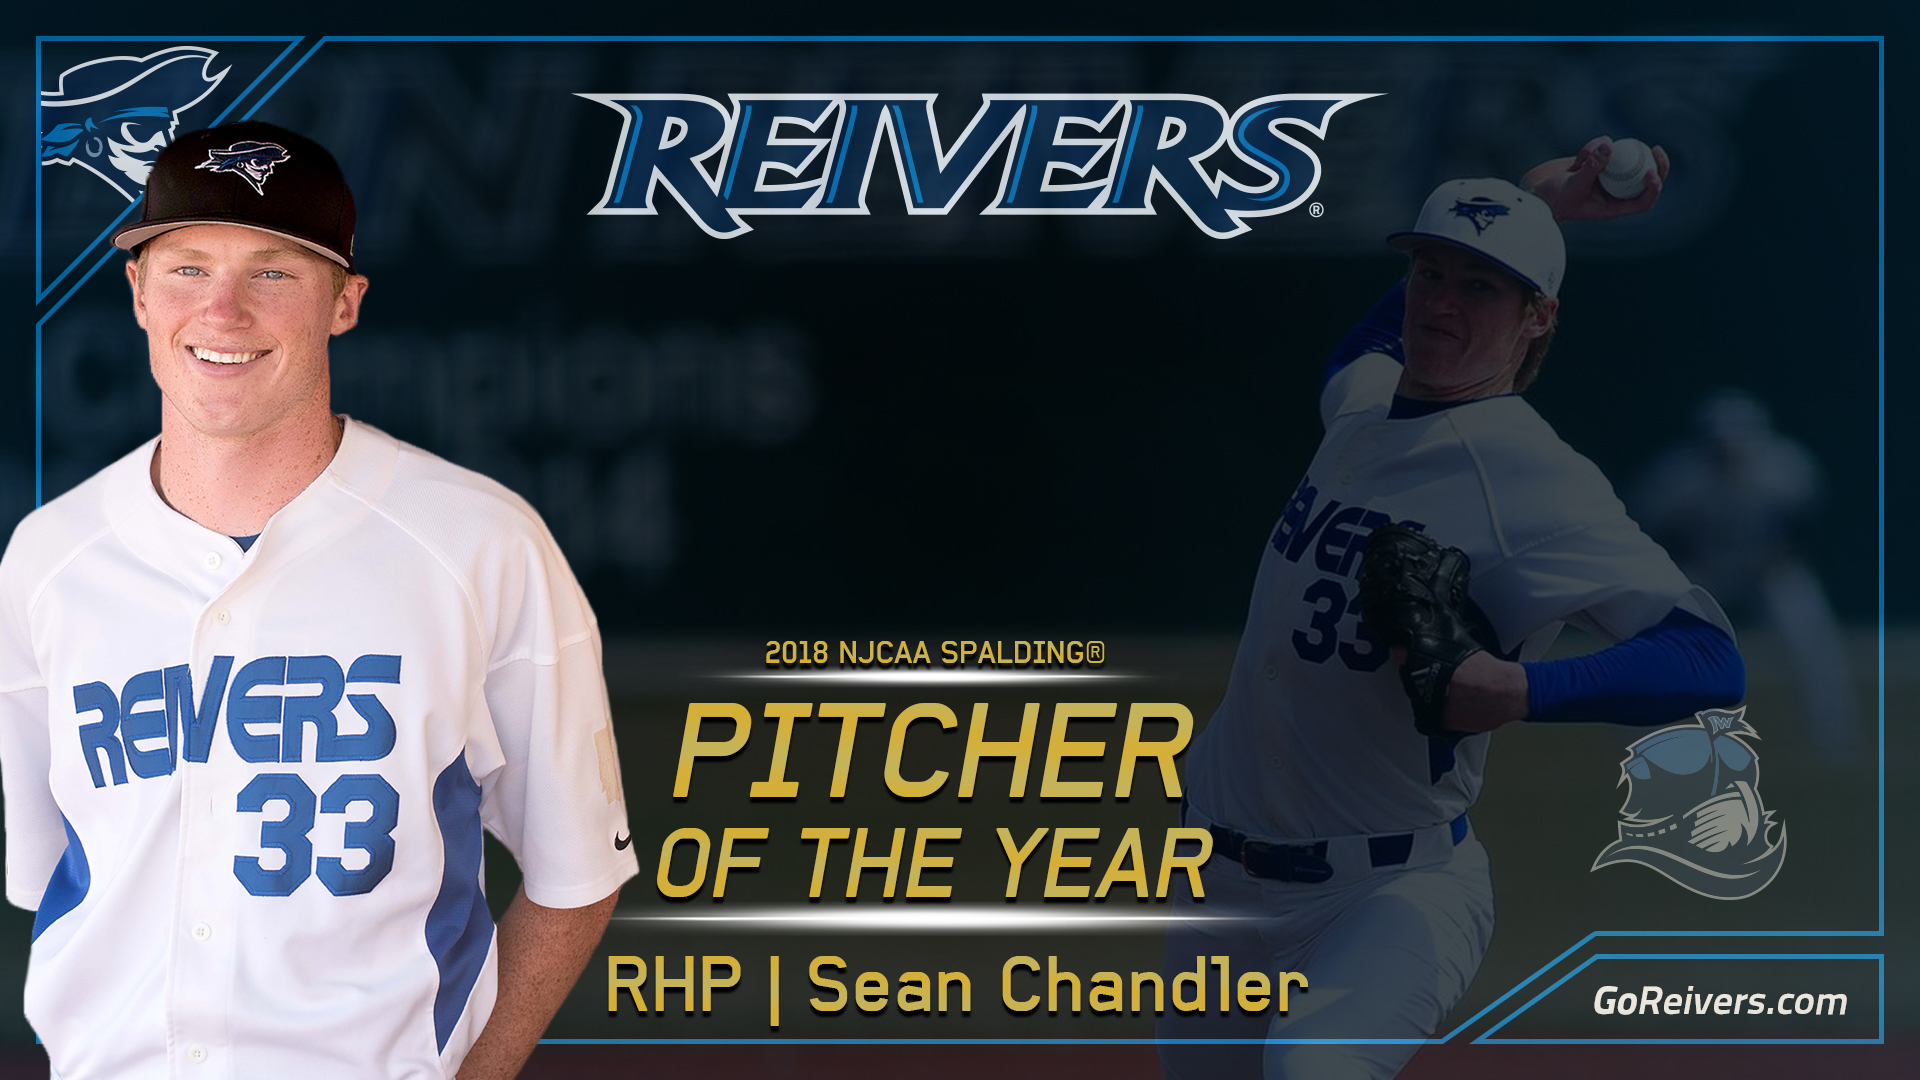 Chandler named NJCAA Pitcher of the Year